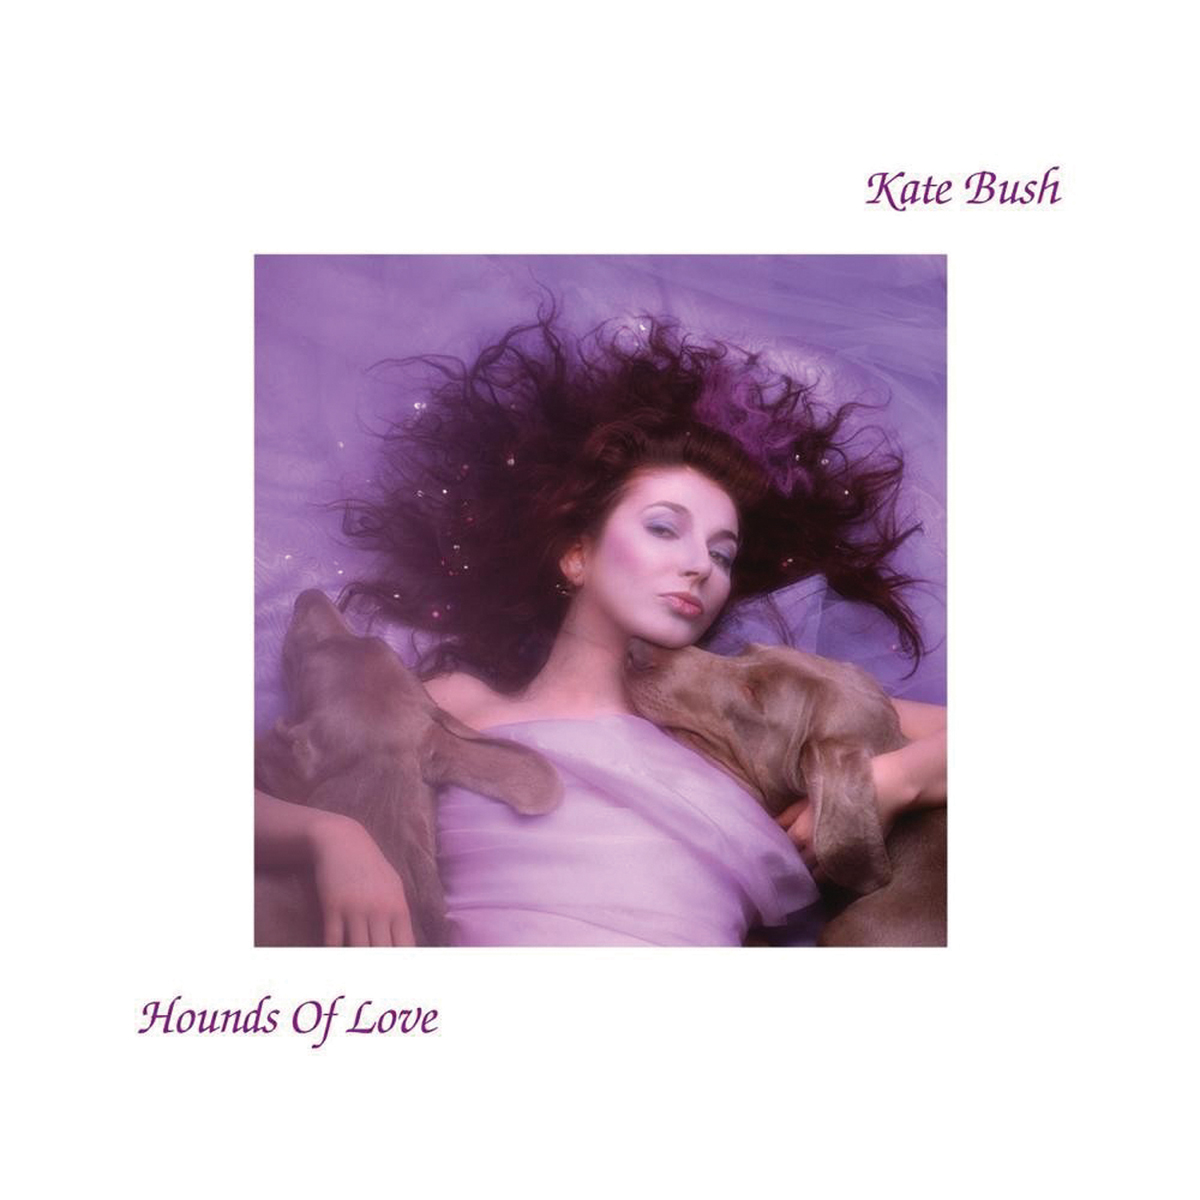 The Making of Kate Bush's Hounds of Love